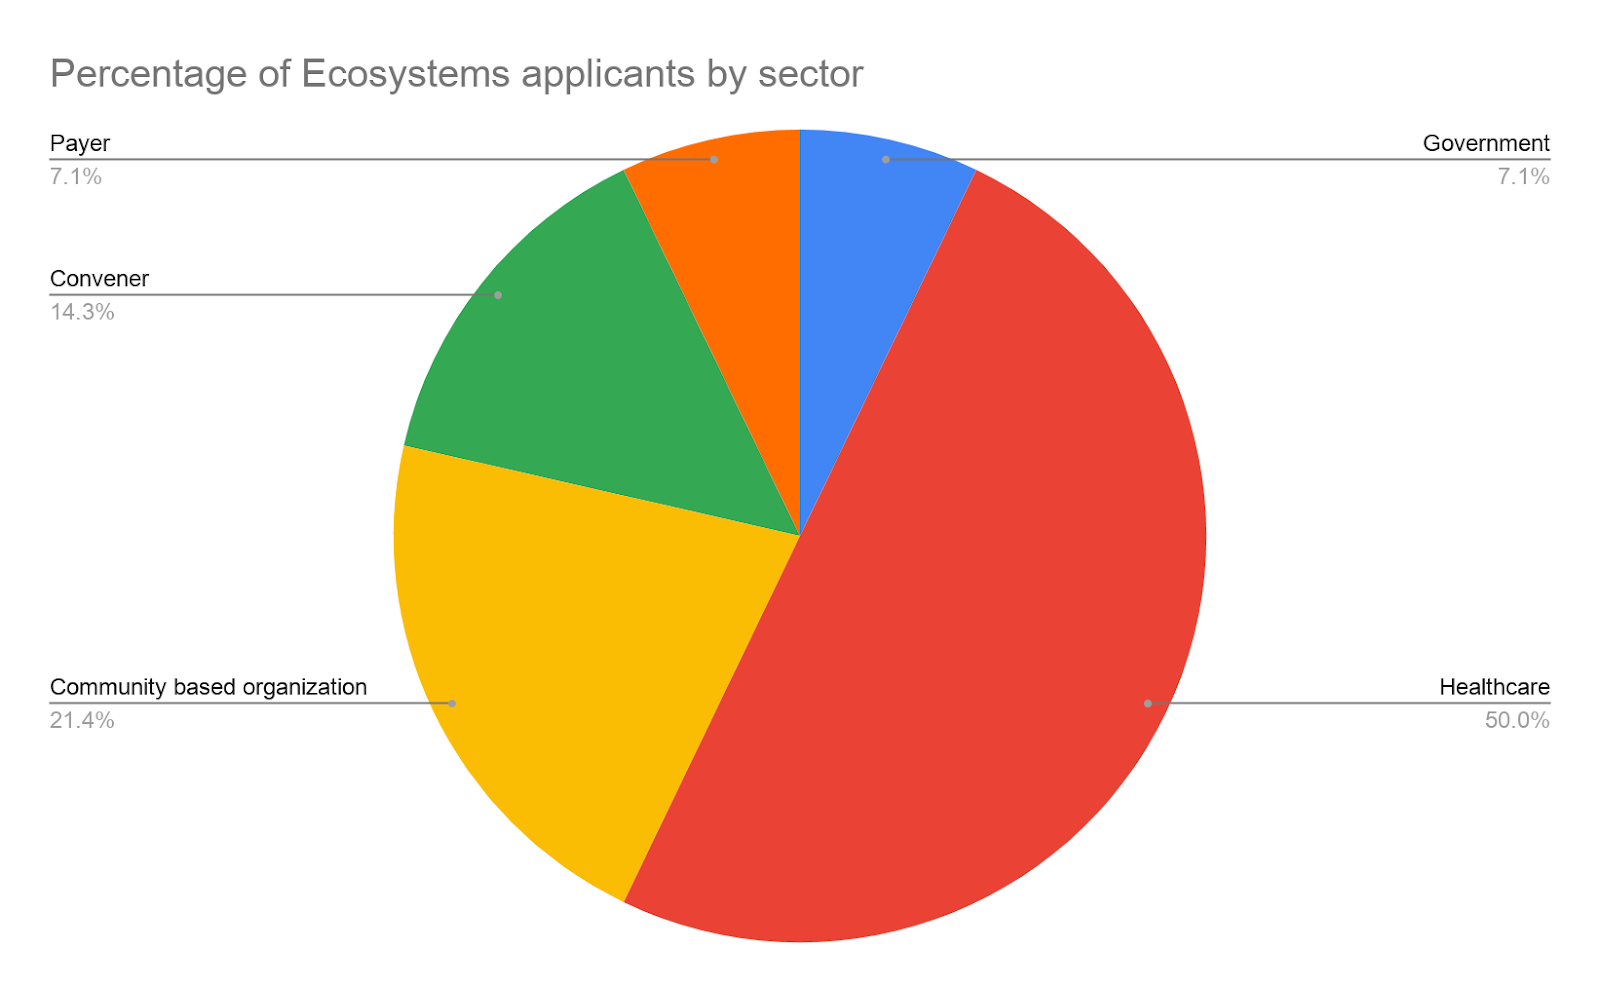 Pie chart showing % of Learning Collaborative applicants by sector: 50% Healthcare, 21.4% community based organization, 14.3% Convener, 7.1% Payer, and 7.1% Government